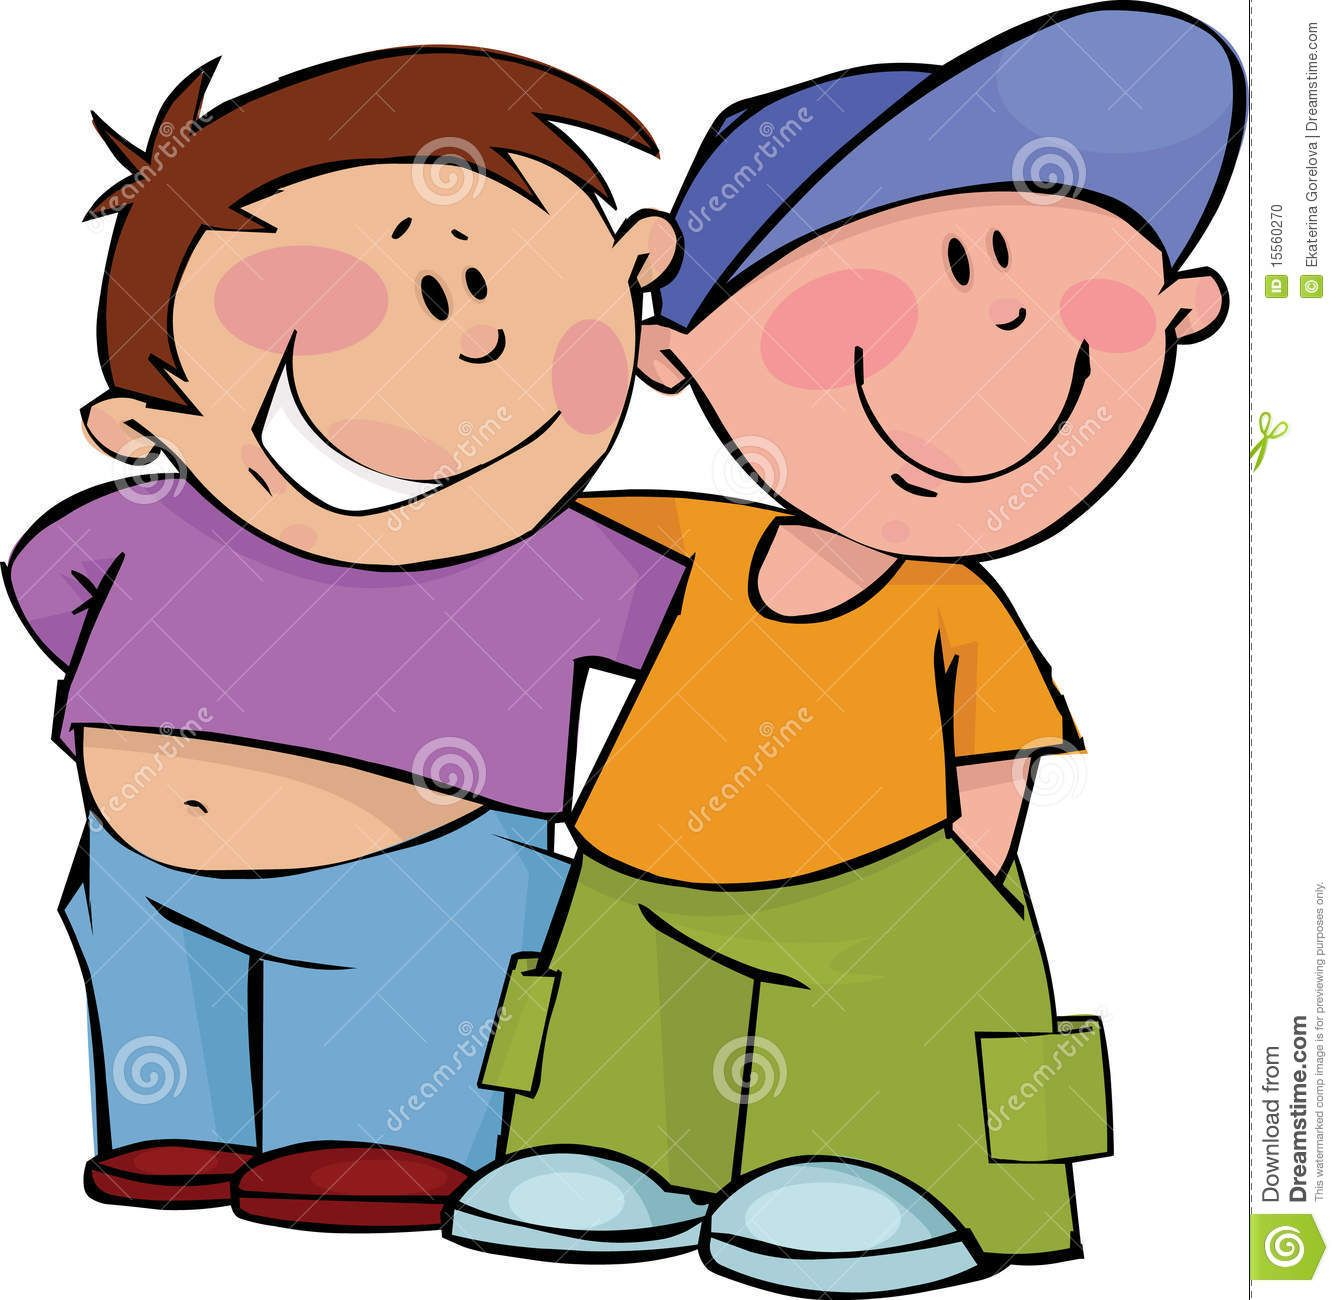 hight resolution of clipart friends two funny boys in a friendly hug